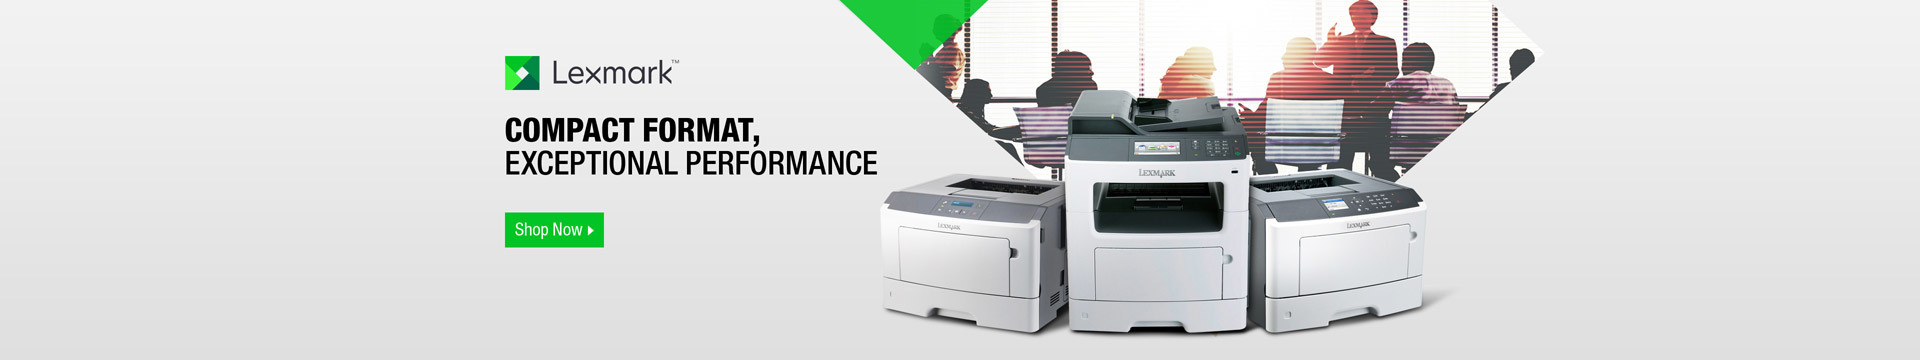 Compact format exceptional performance